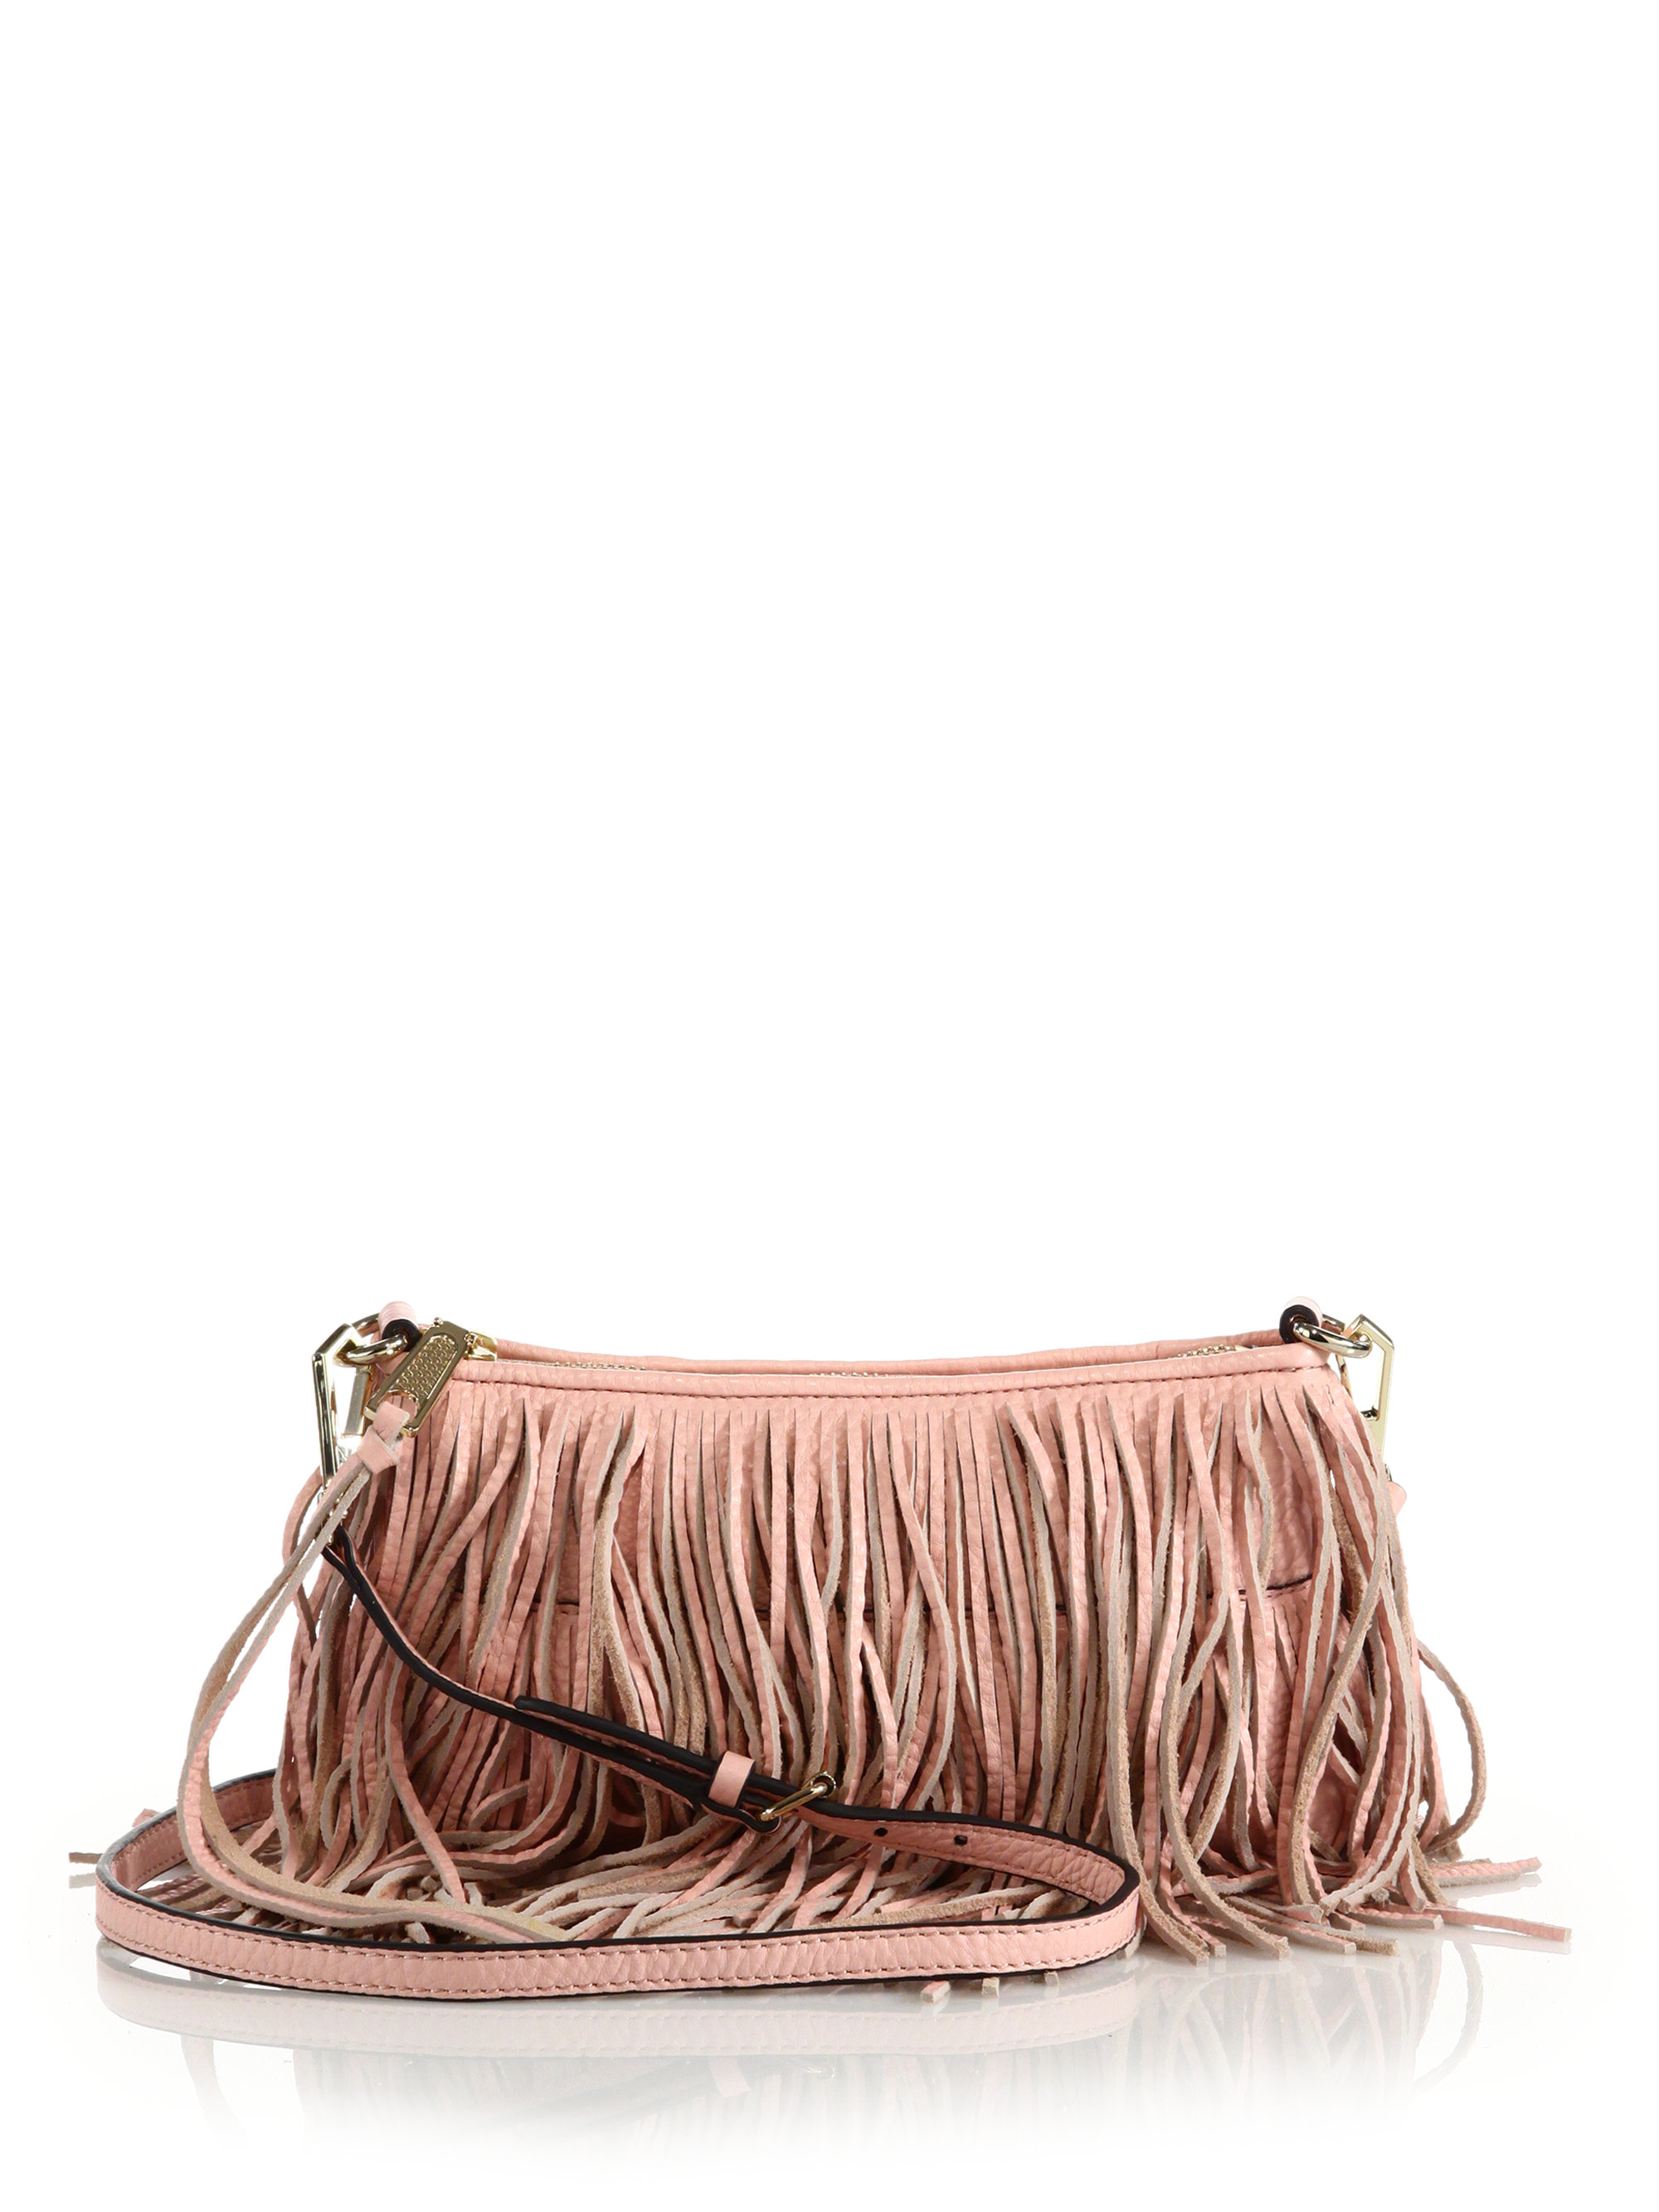 fringed crossbody bag - Pink & Purple Rebecca Minkoff